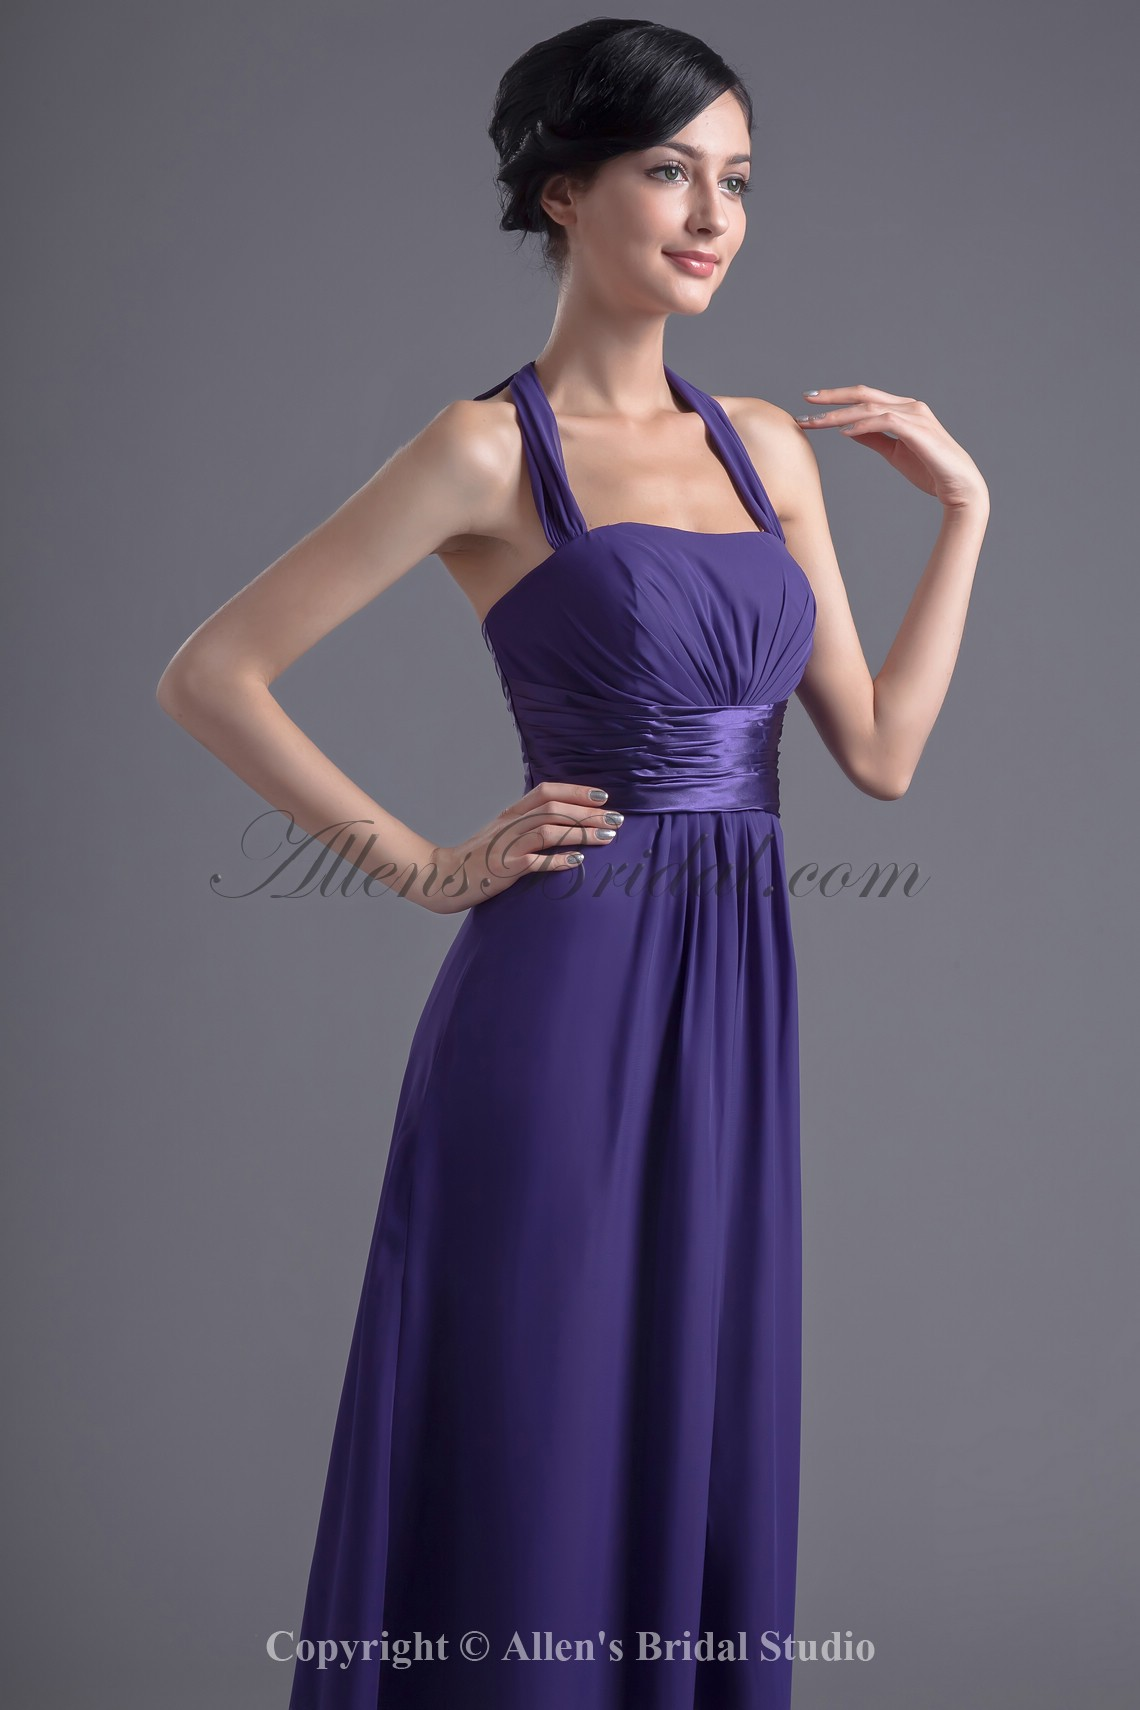 /10-76/chiffon-halter-neckline-column-floor-length-prom-dress.jpg